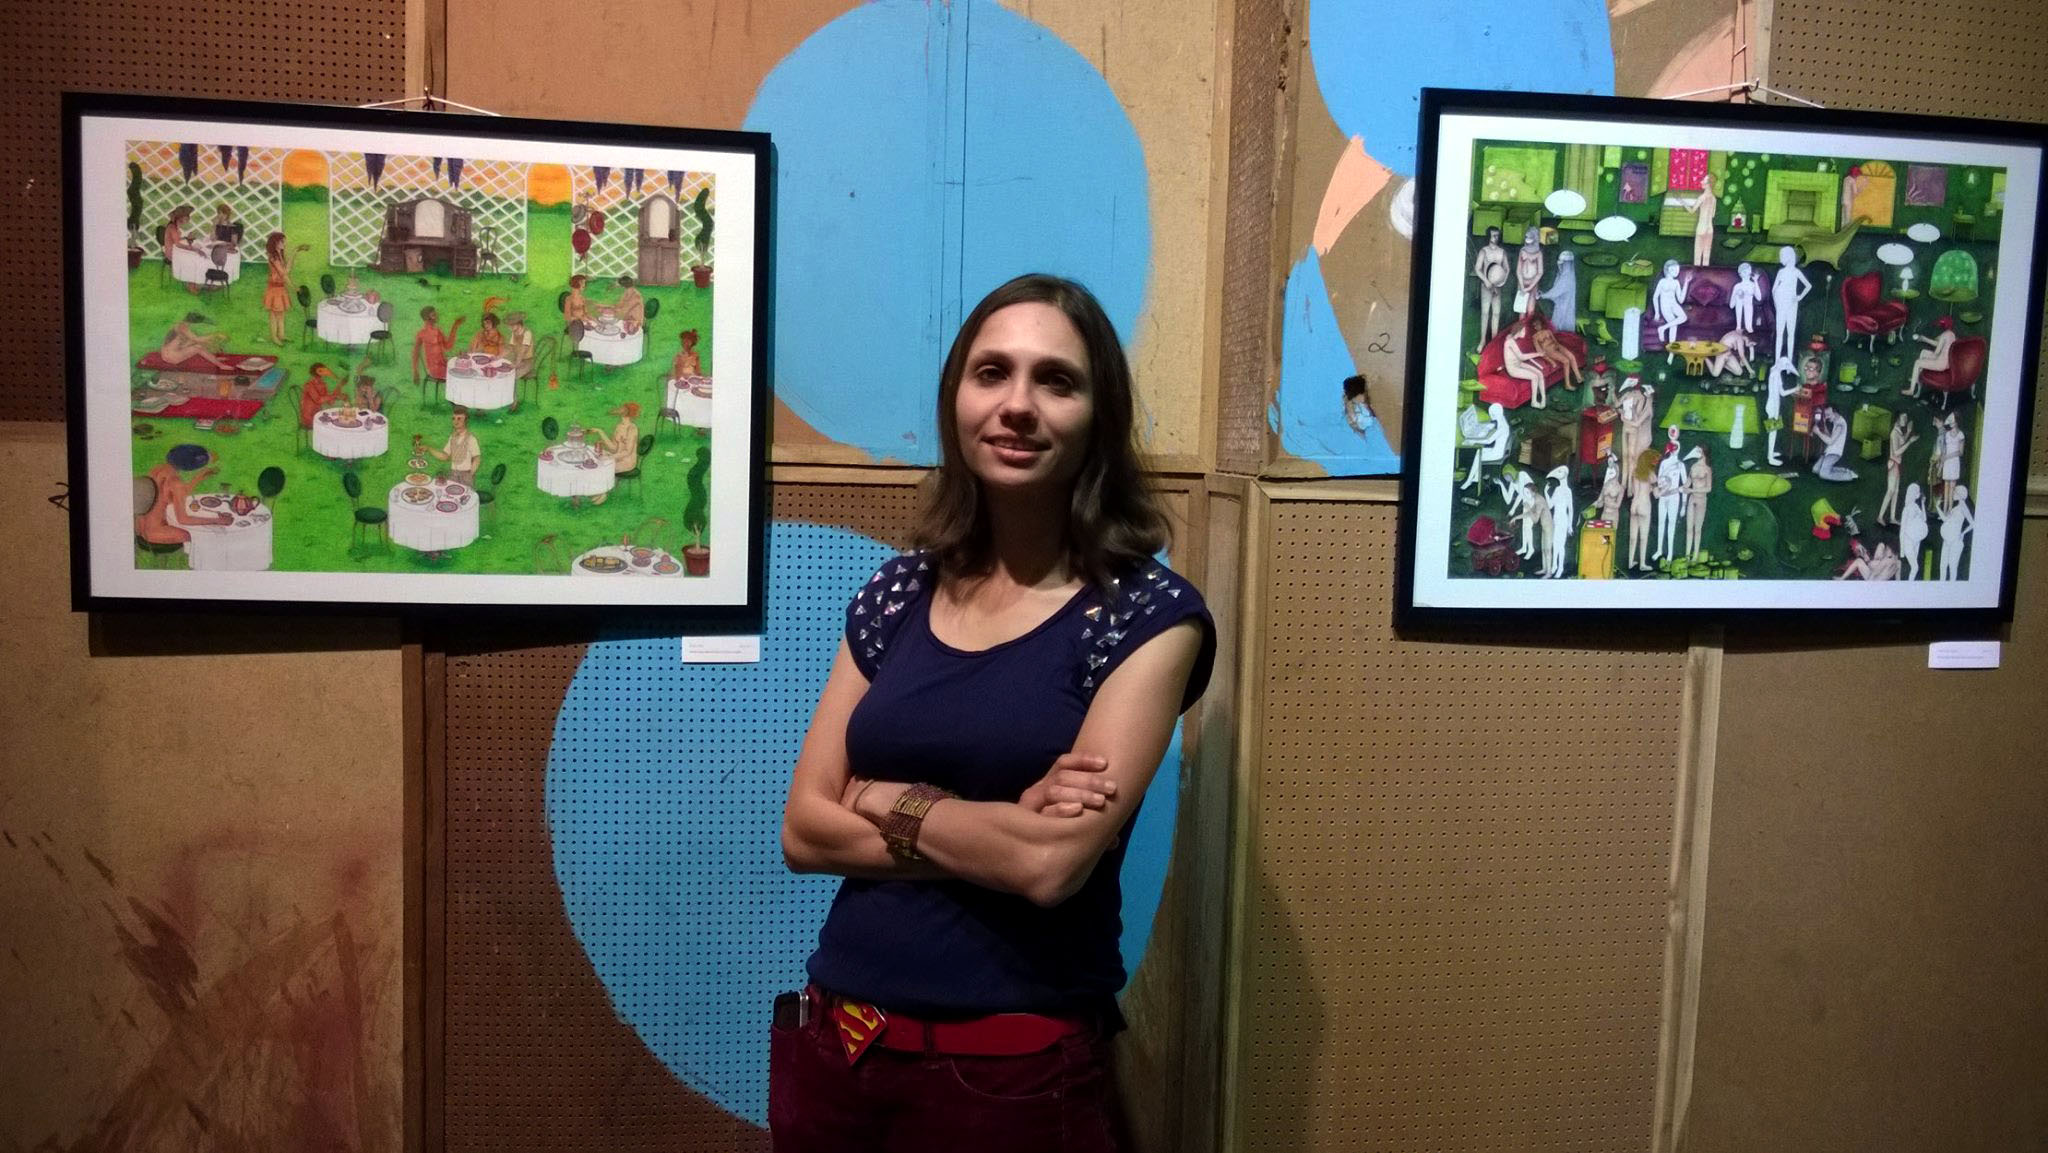 Photo of Janine Shroff in front of 2 paintings by Nikhil Hemranjani at Sitara Studios